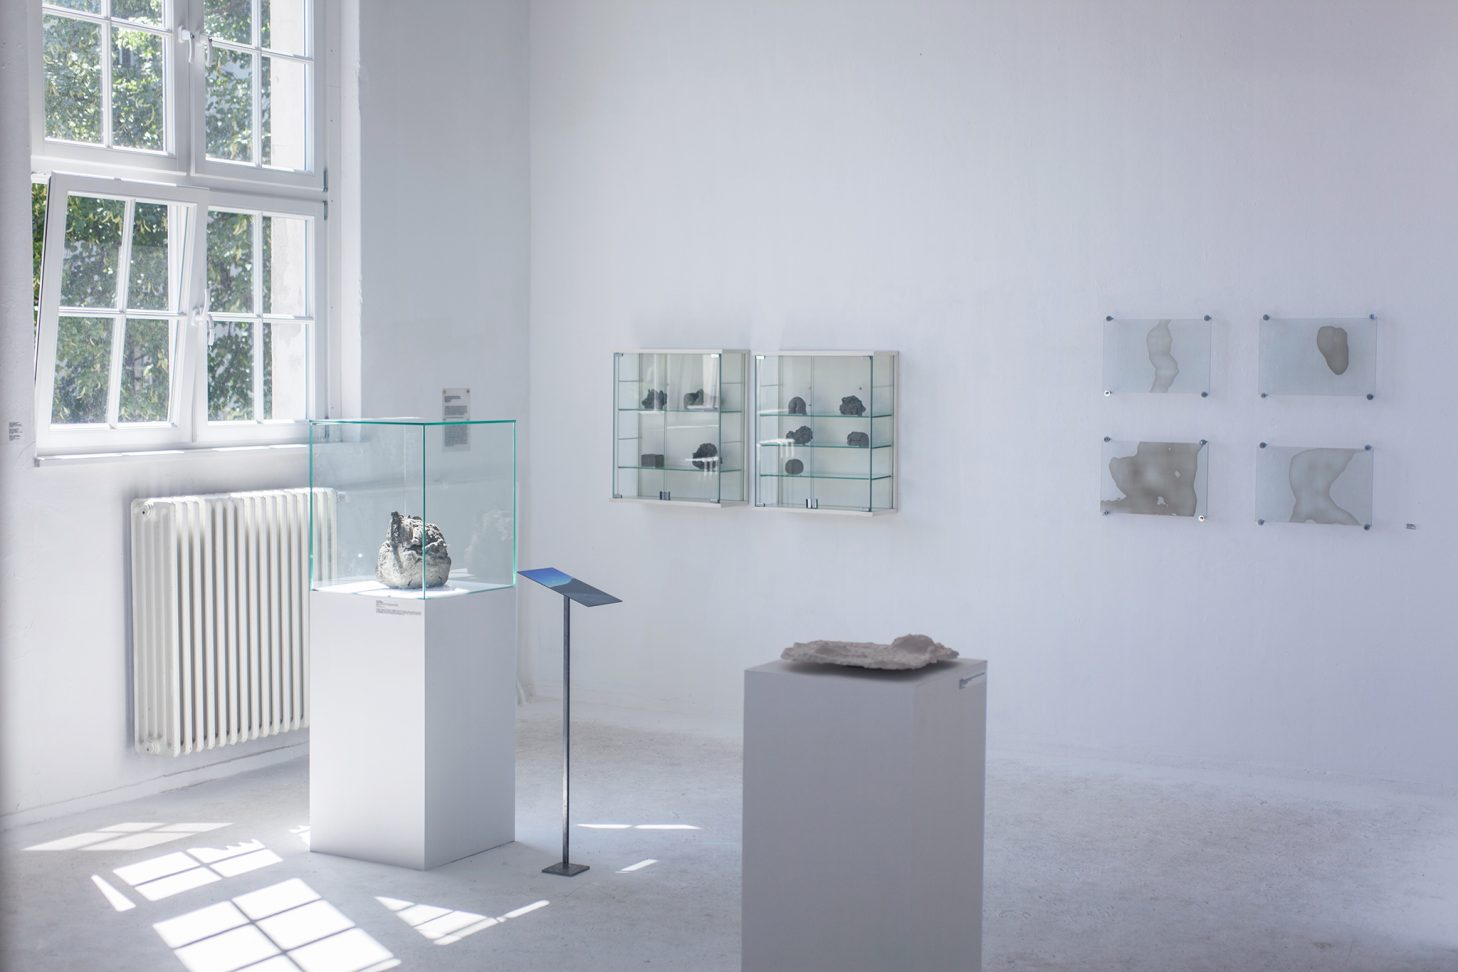 exhibition view: Rundgang UdK Berlin (2015)